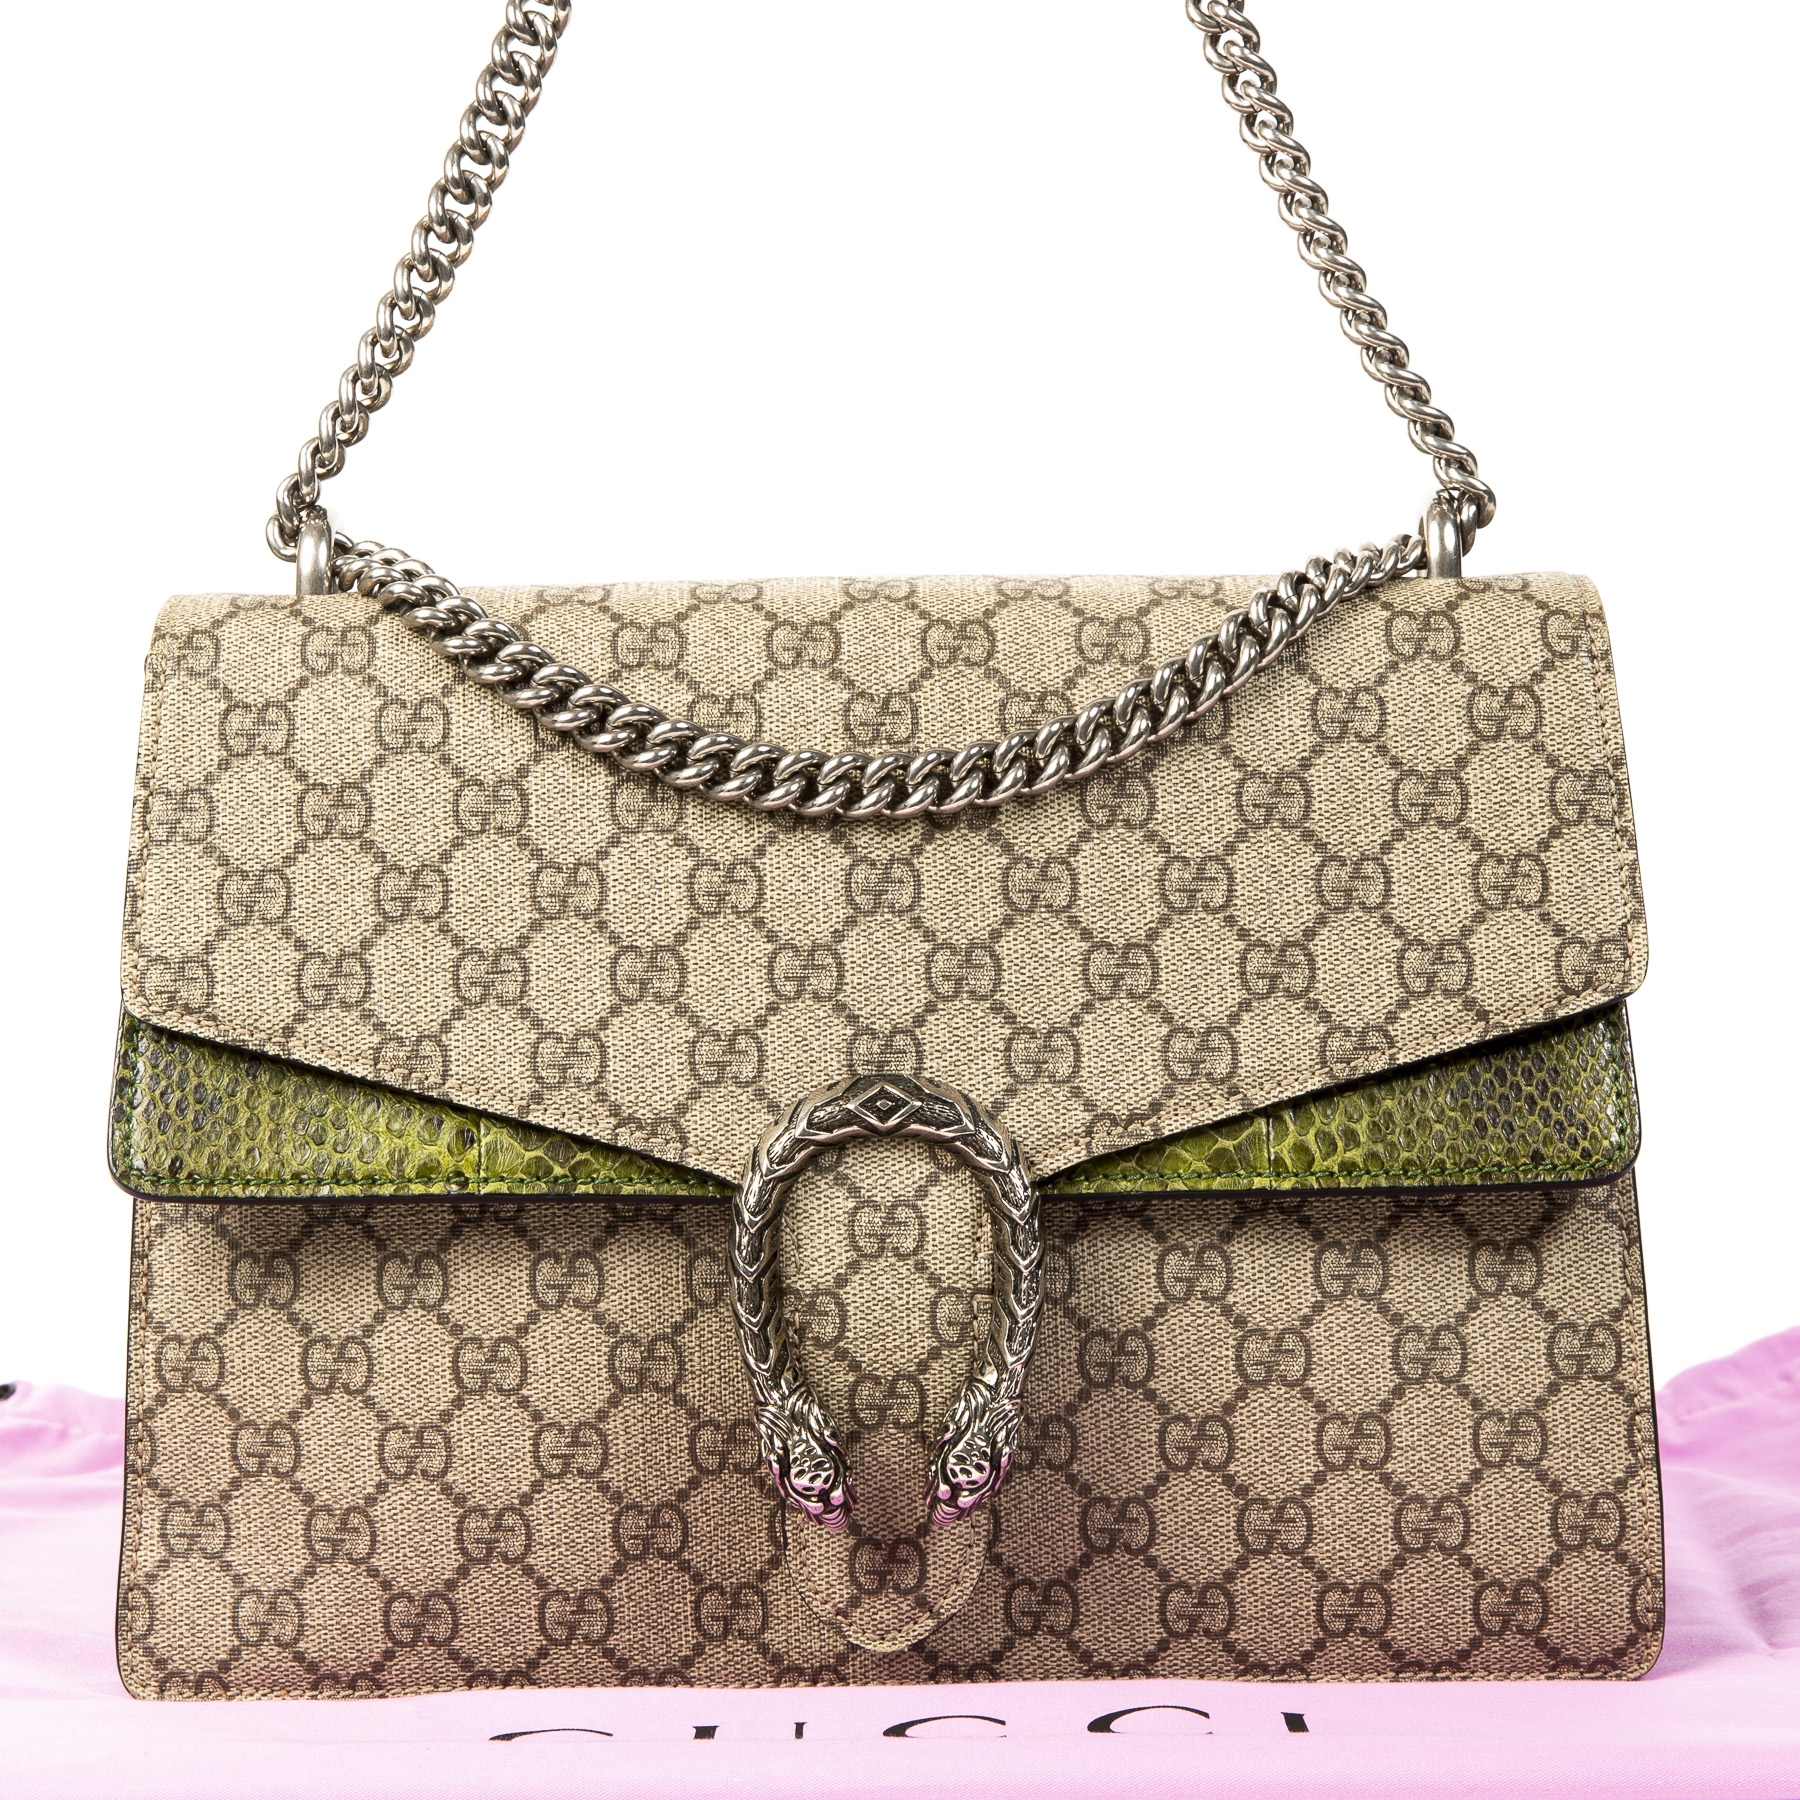 We buy and sell your authentic Gucci GG Supreme Monogram Python Dionysus for the best price